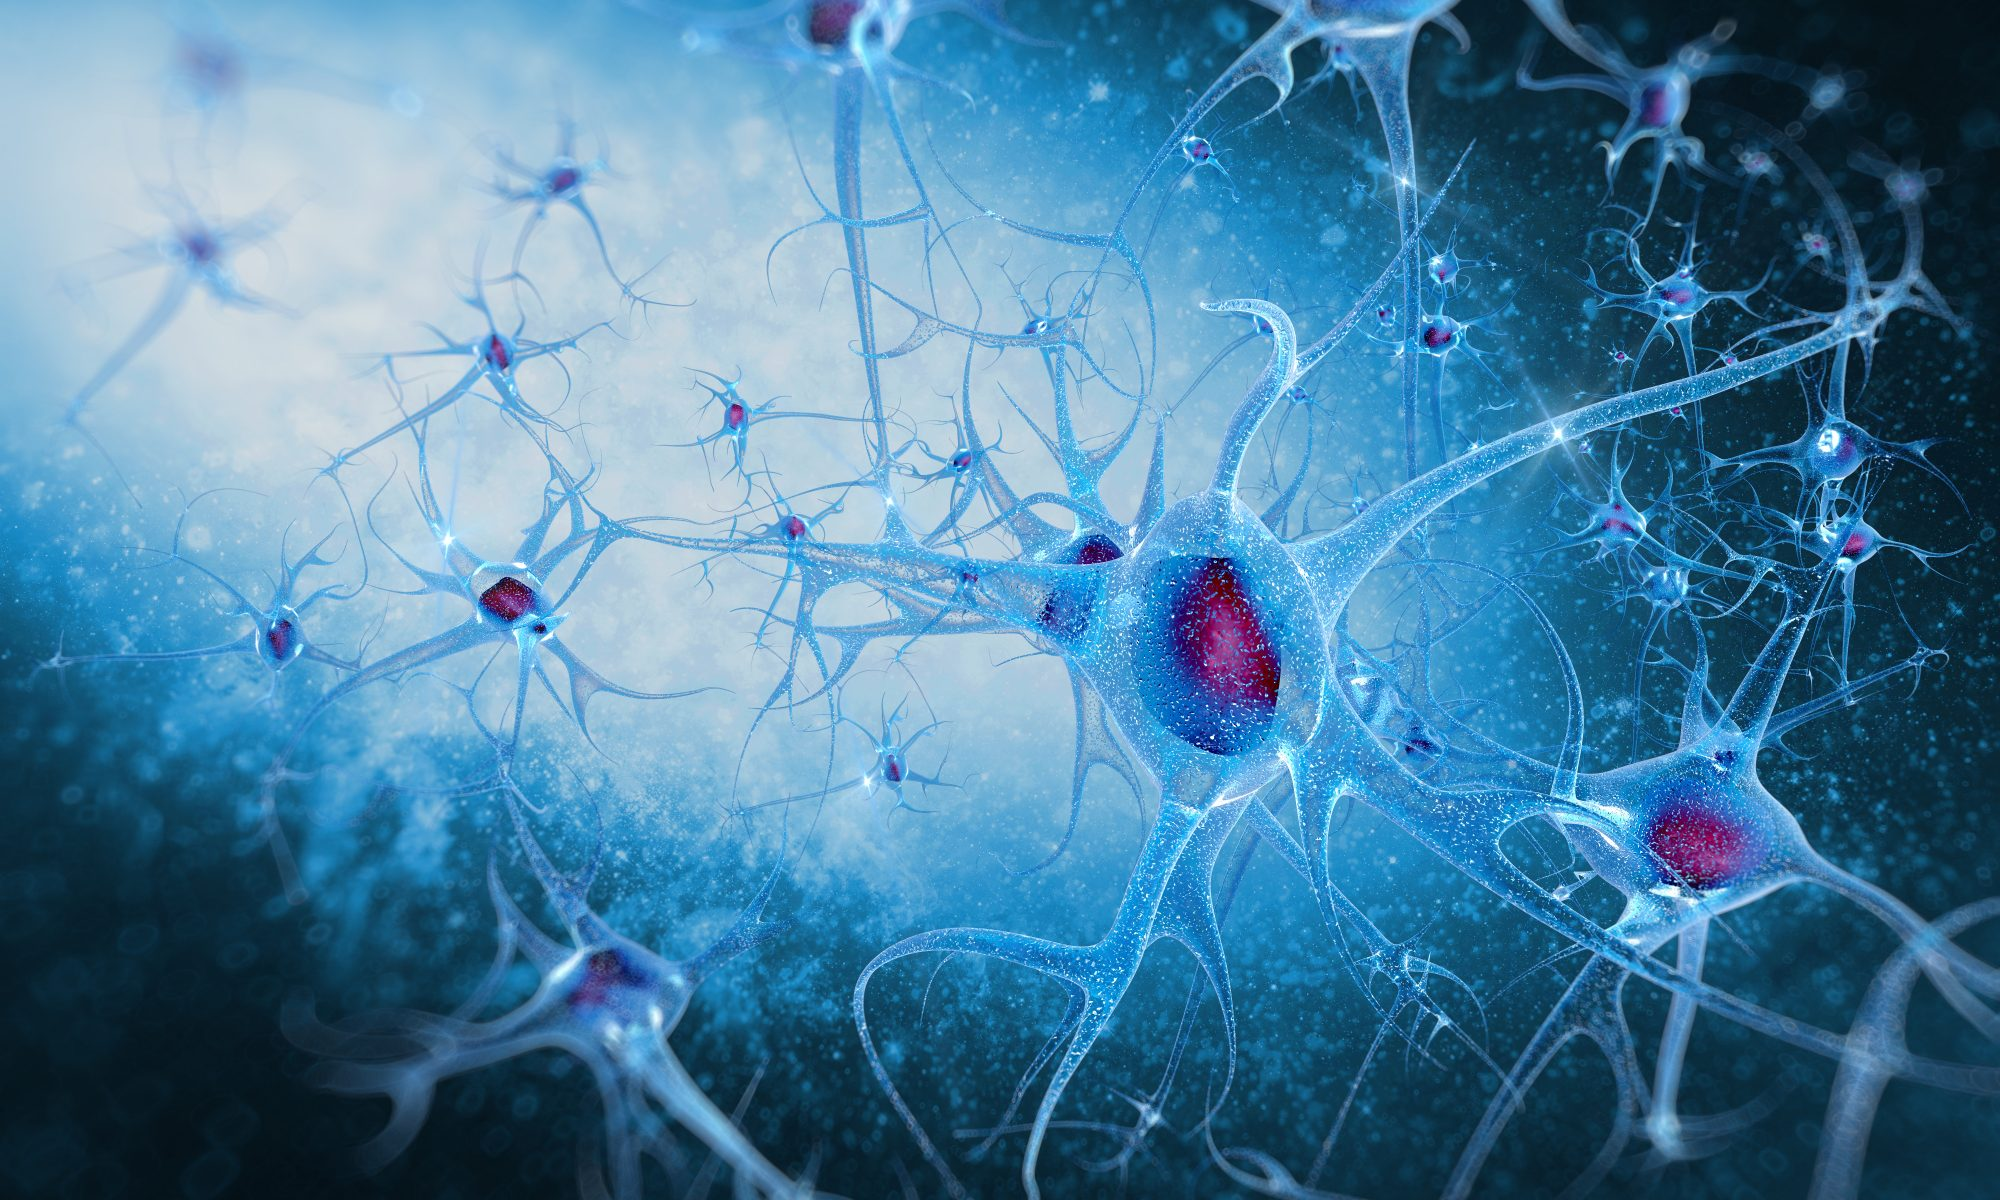 illustration of neurons interacting